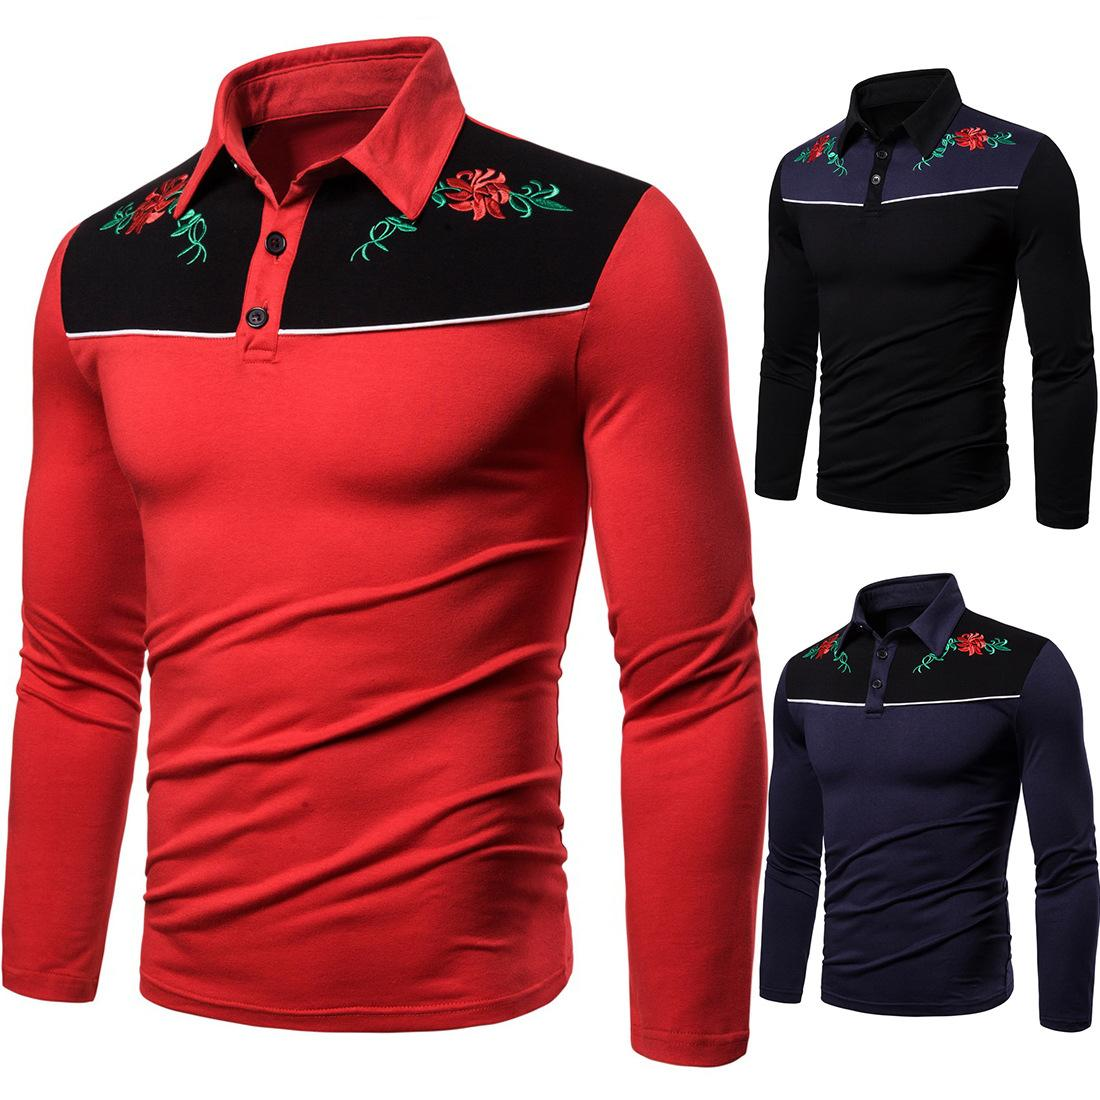 New Luxury Design Polo Shirt Men Long-sleeved T-shirt England Embroidery Stretch Long-sleeved Lapel Polo Shirt Free Shipping